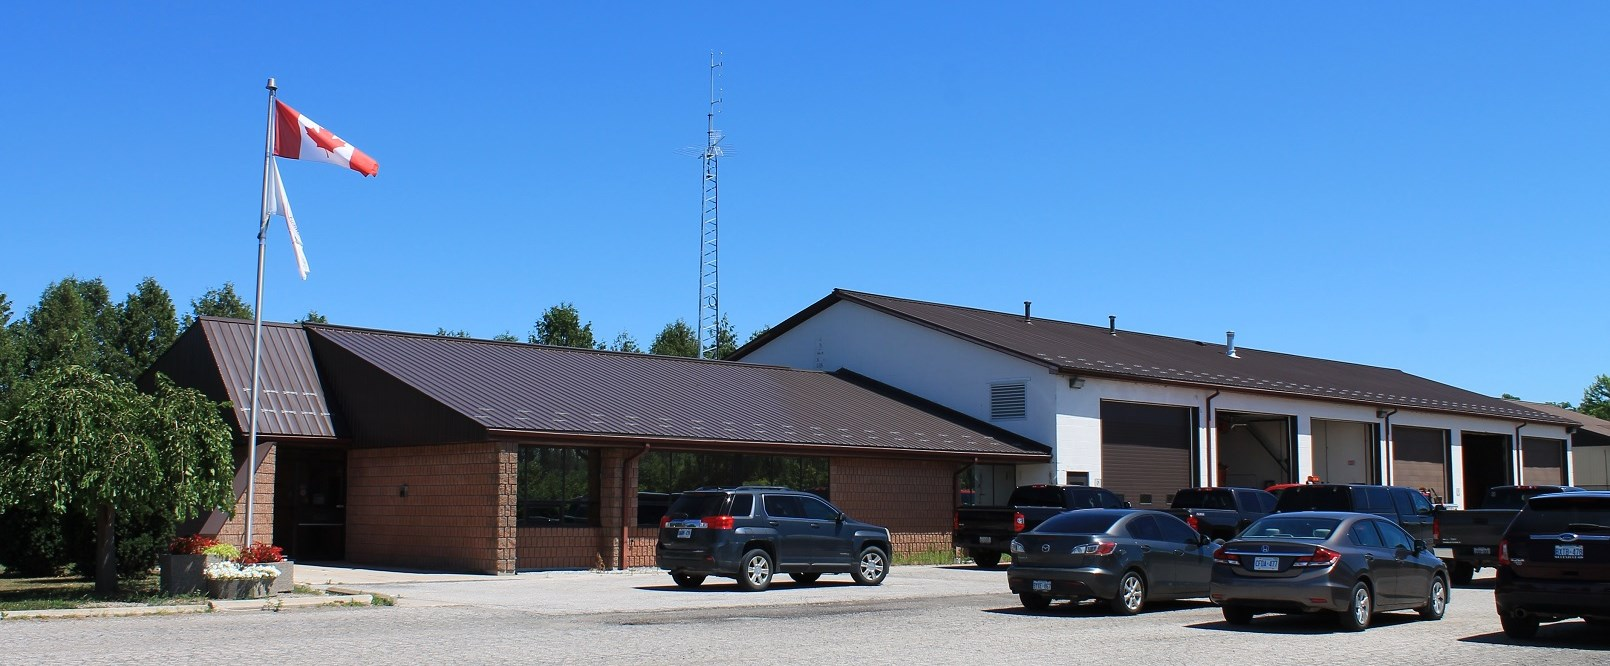 Warwick Township Office